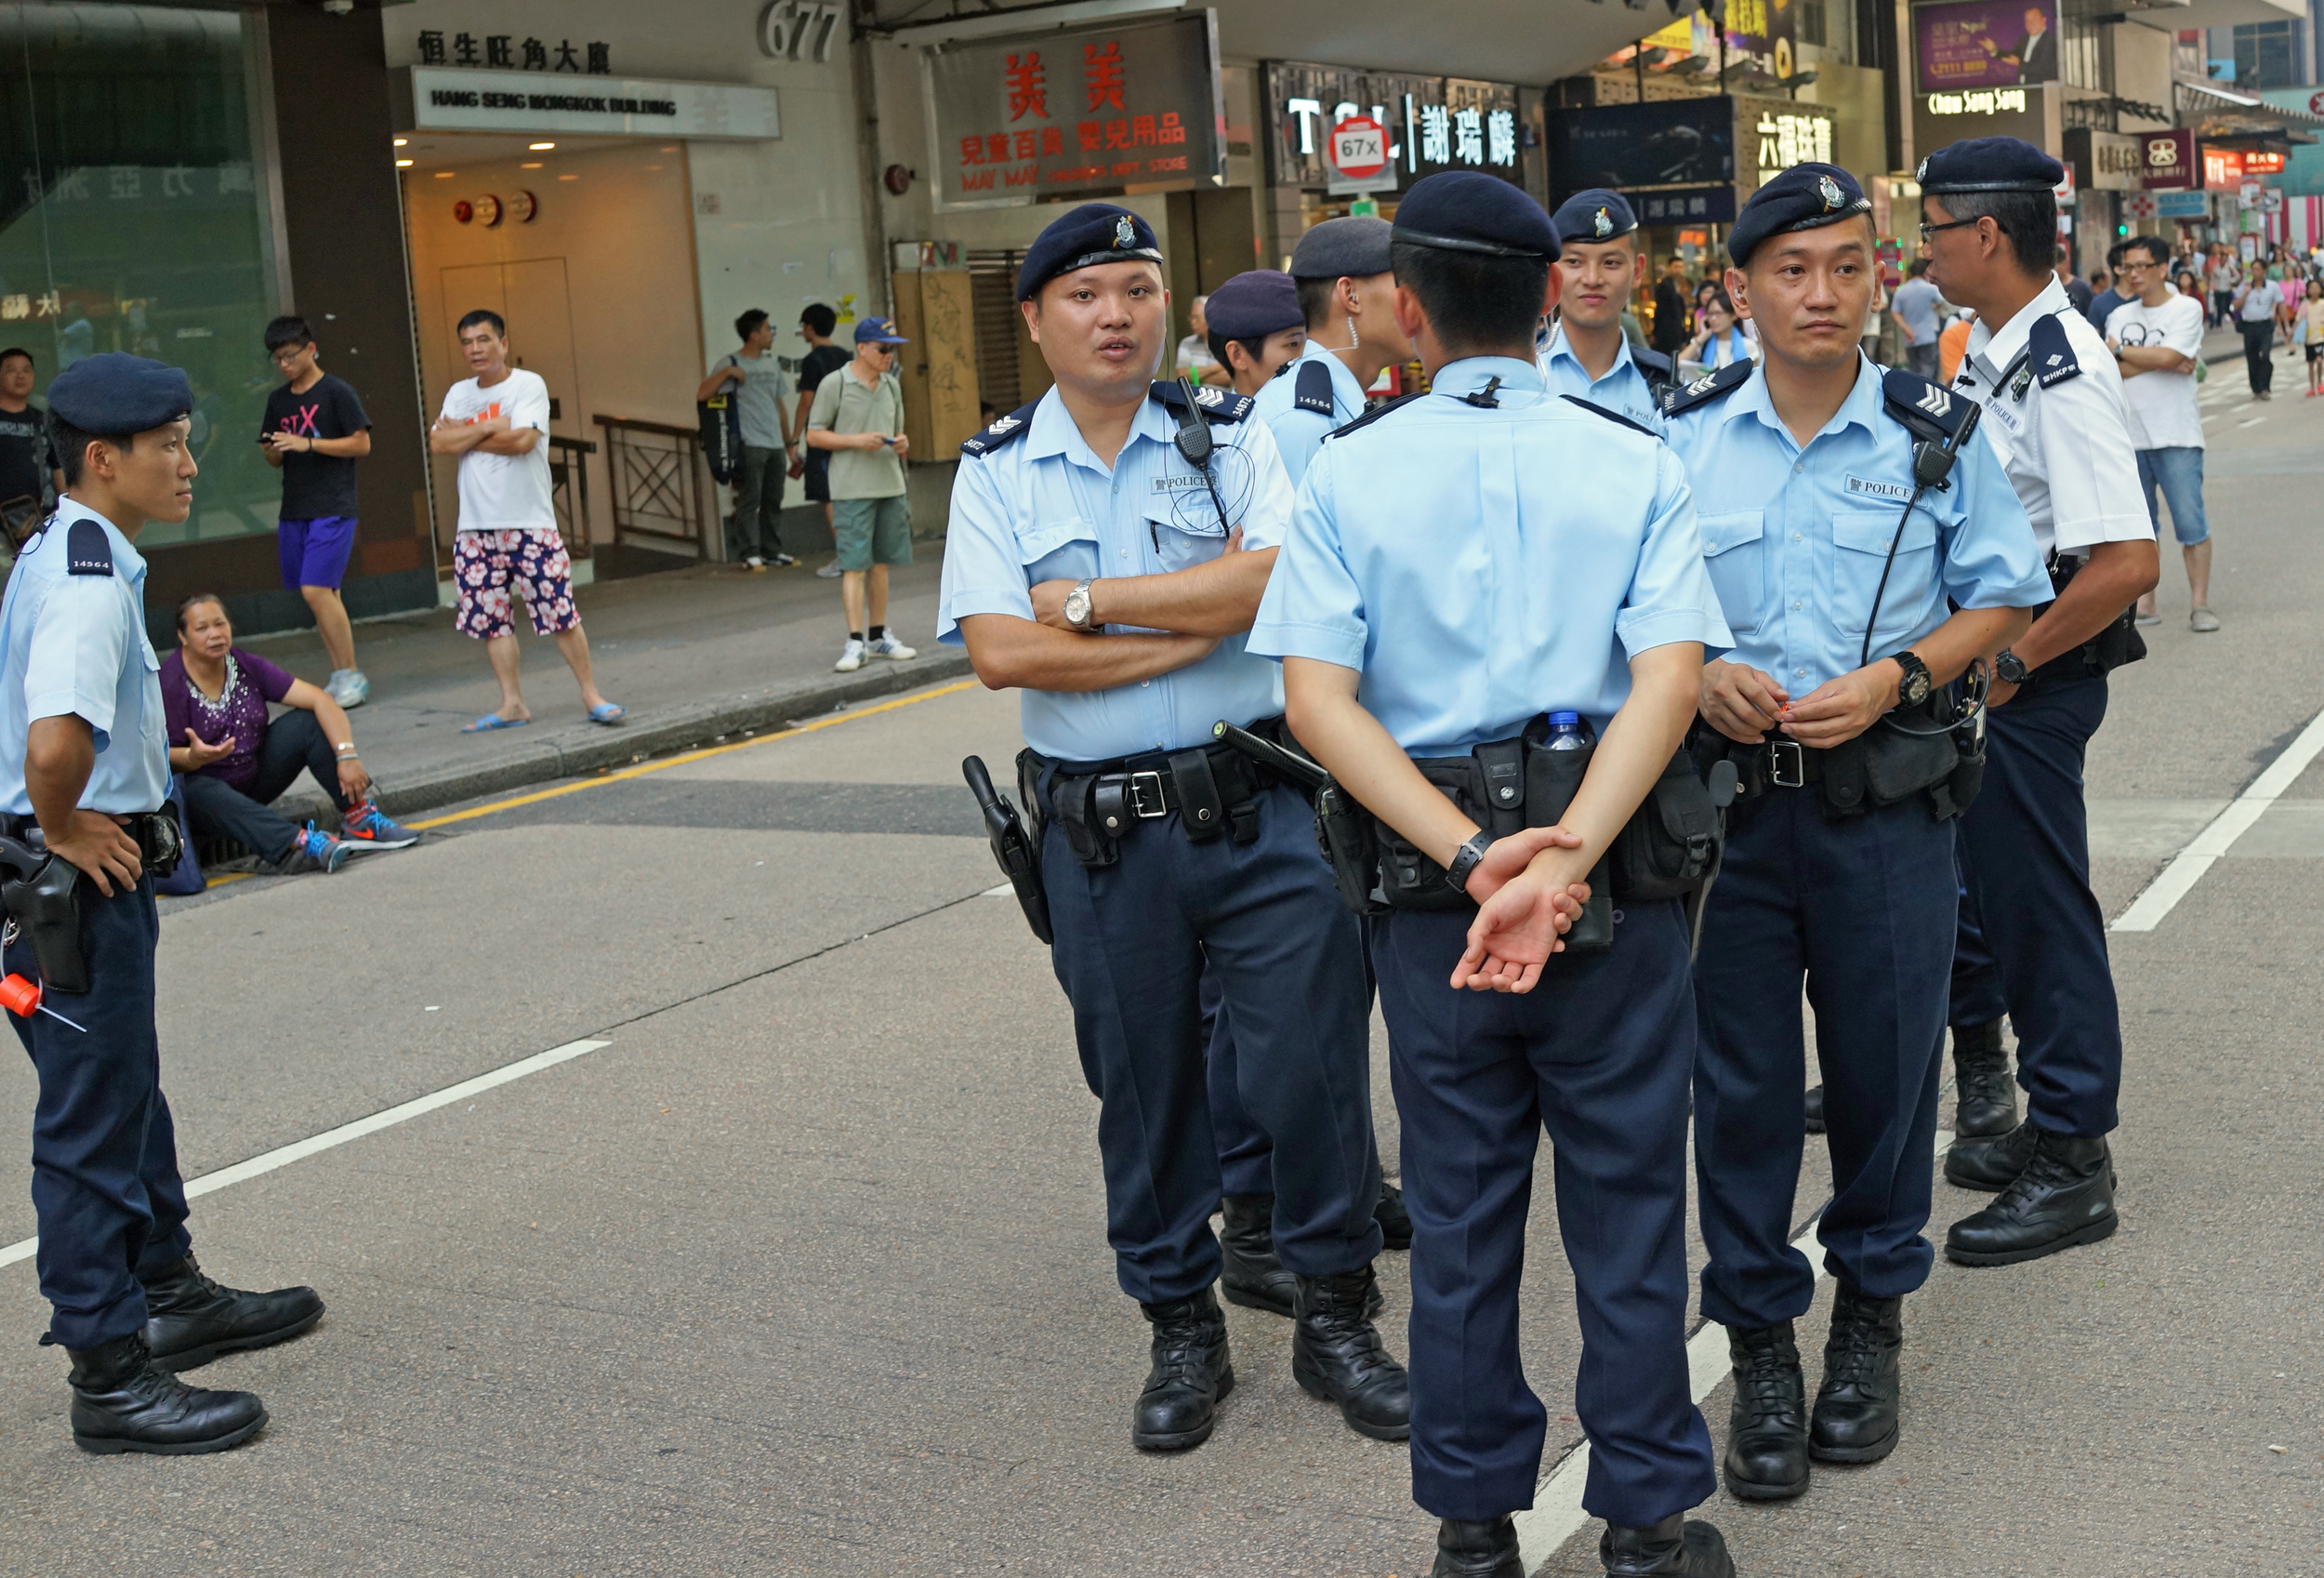 These are PTU Boys - the Police Tactical Unit of the Hong Kong Police - you do not mess with these chaps (and ladies)